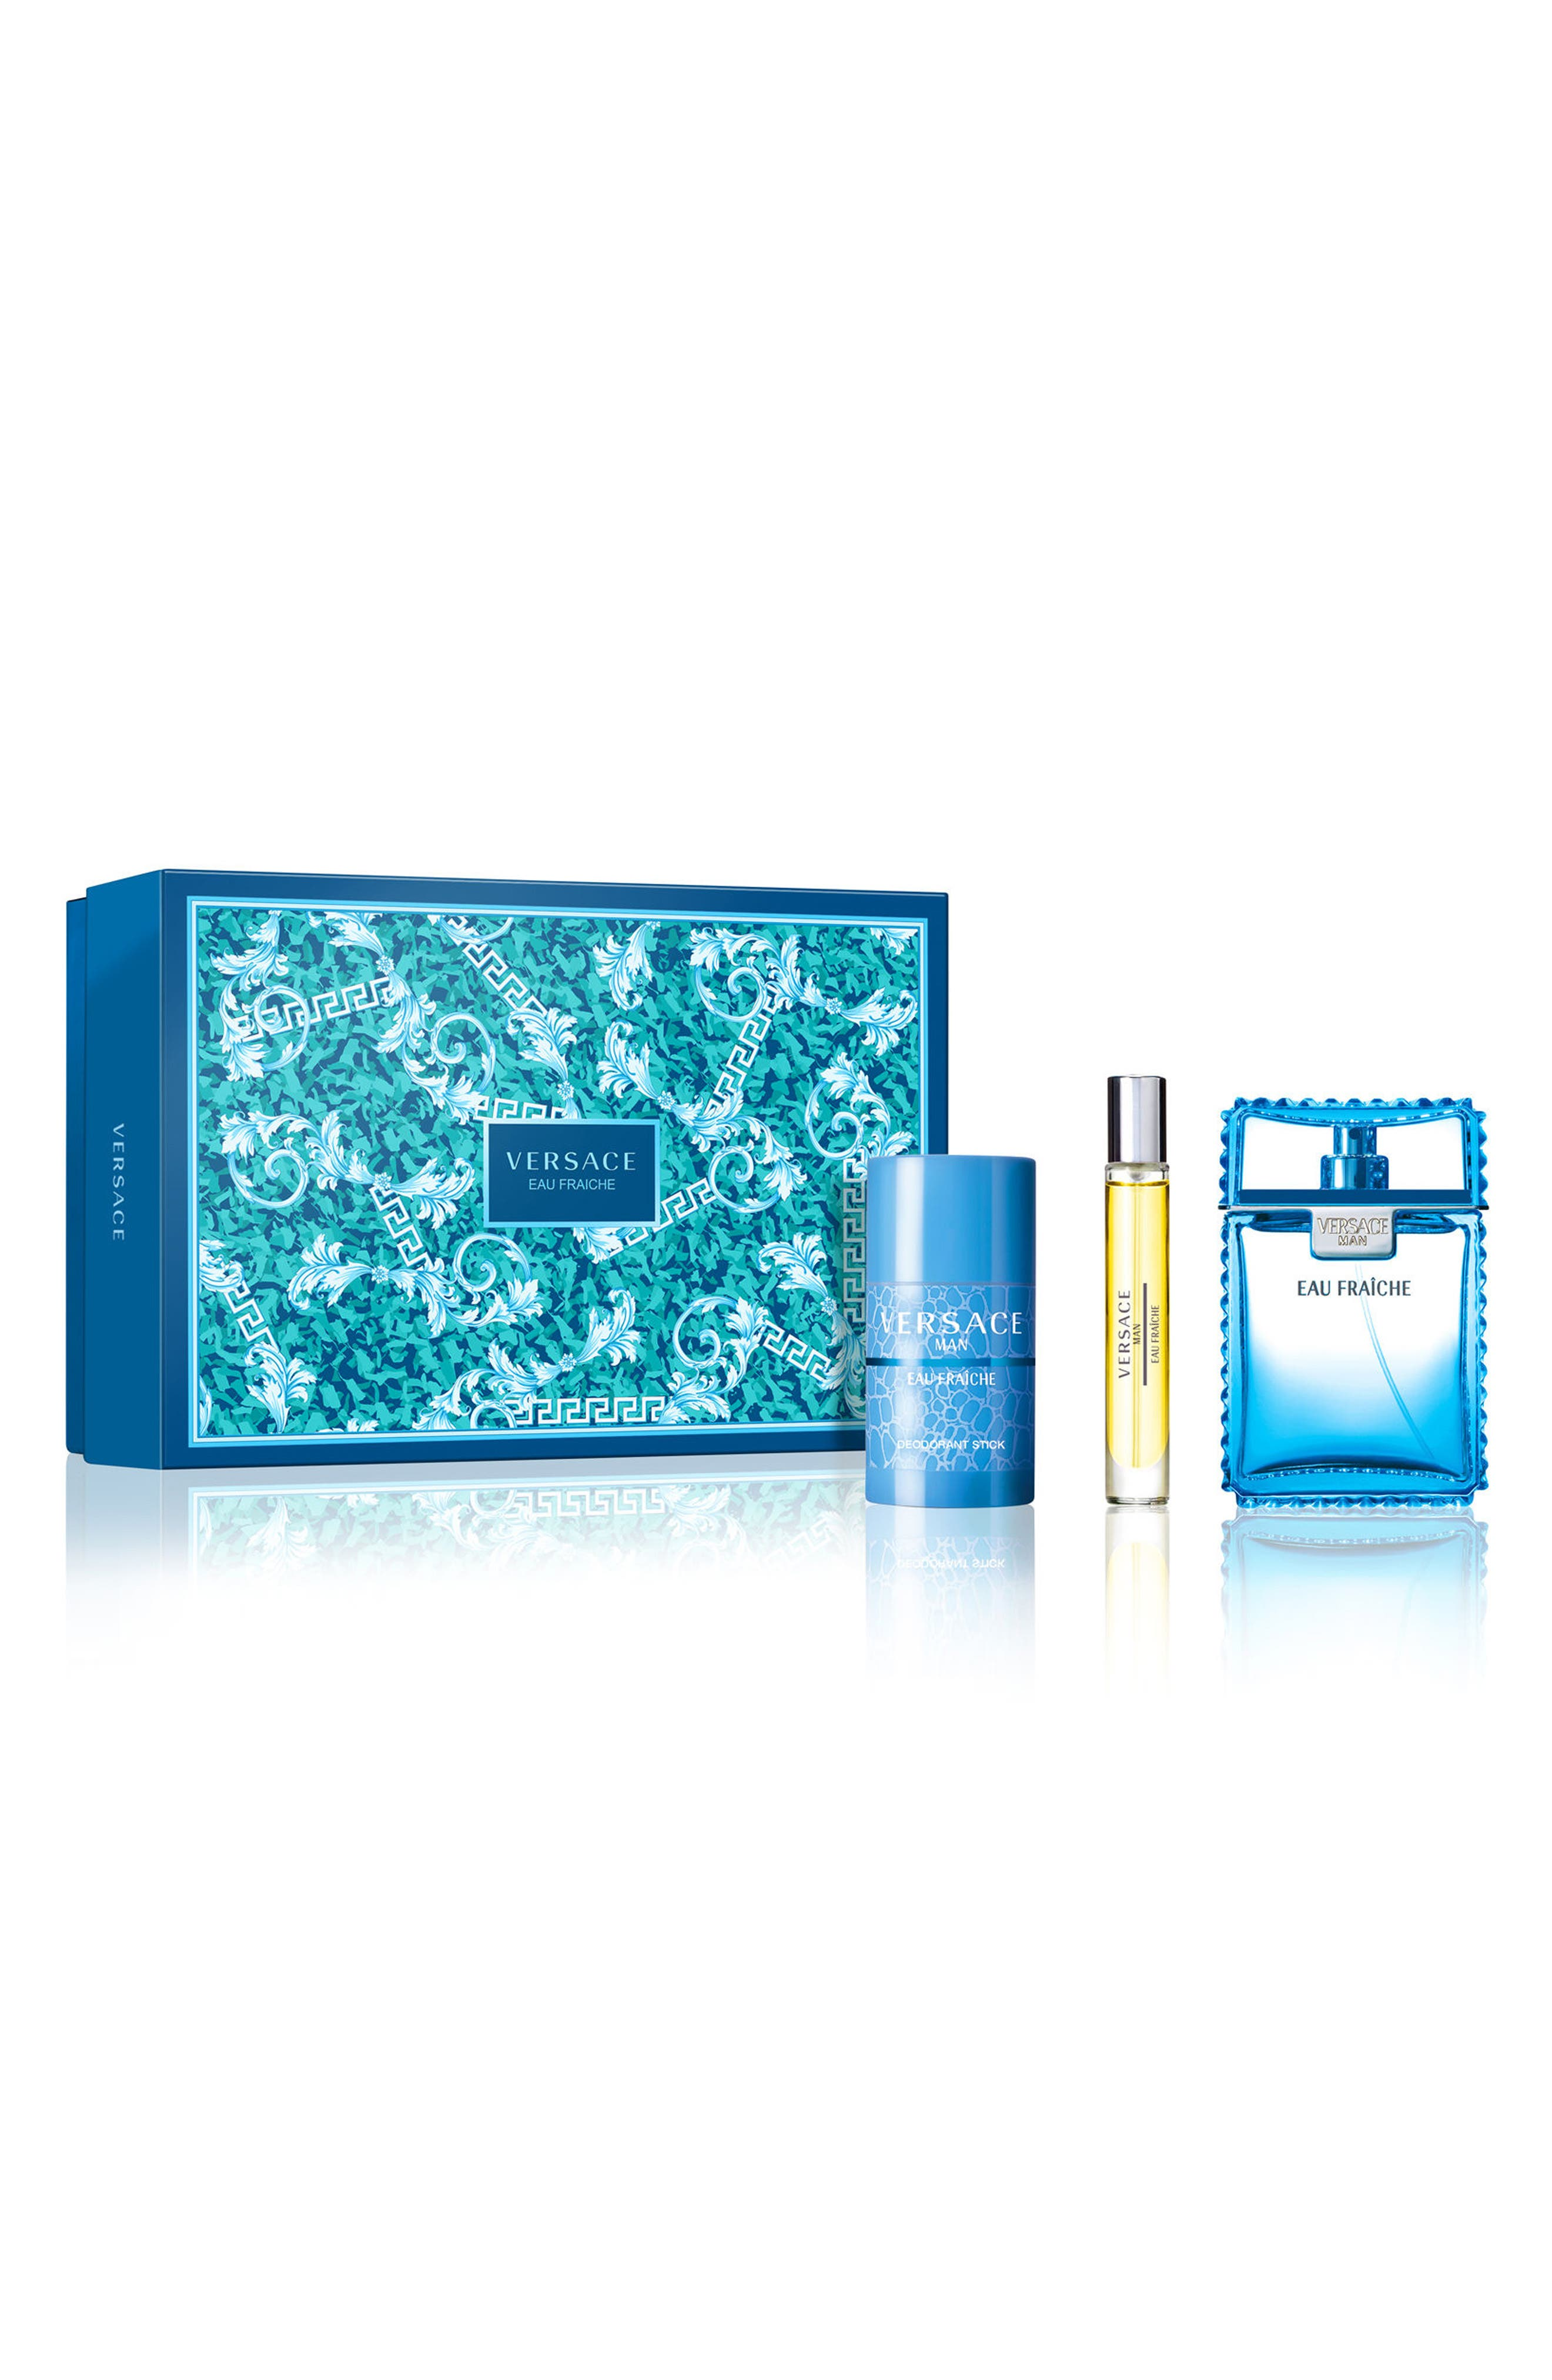 Versace Man Eau Fraîche Set ($124 Value)